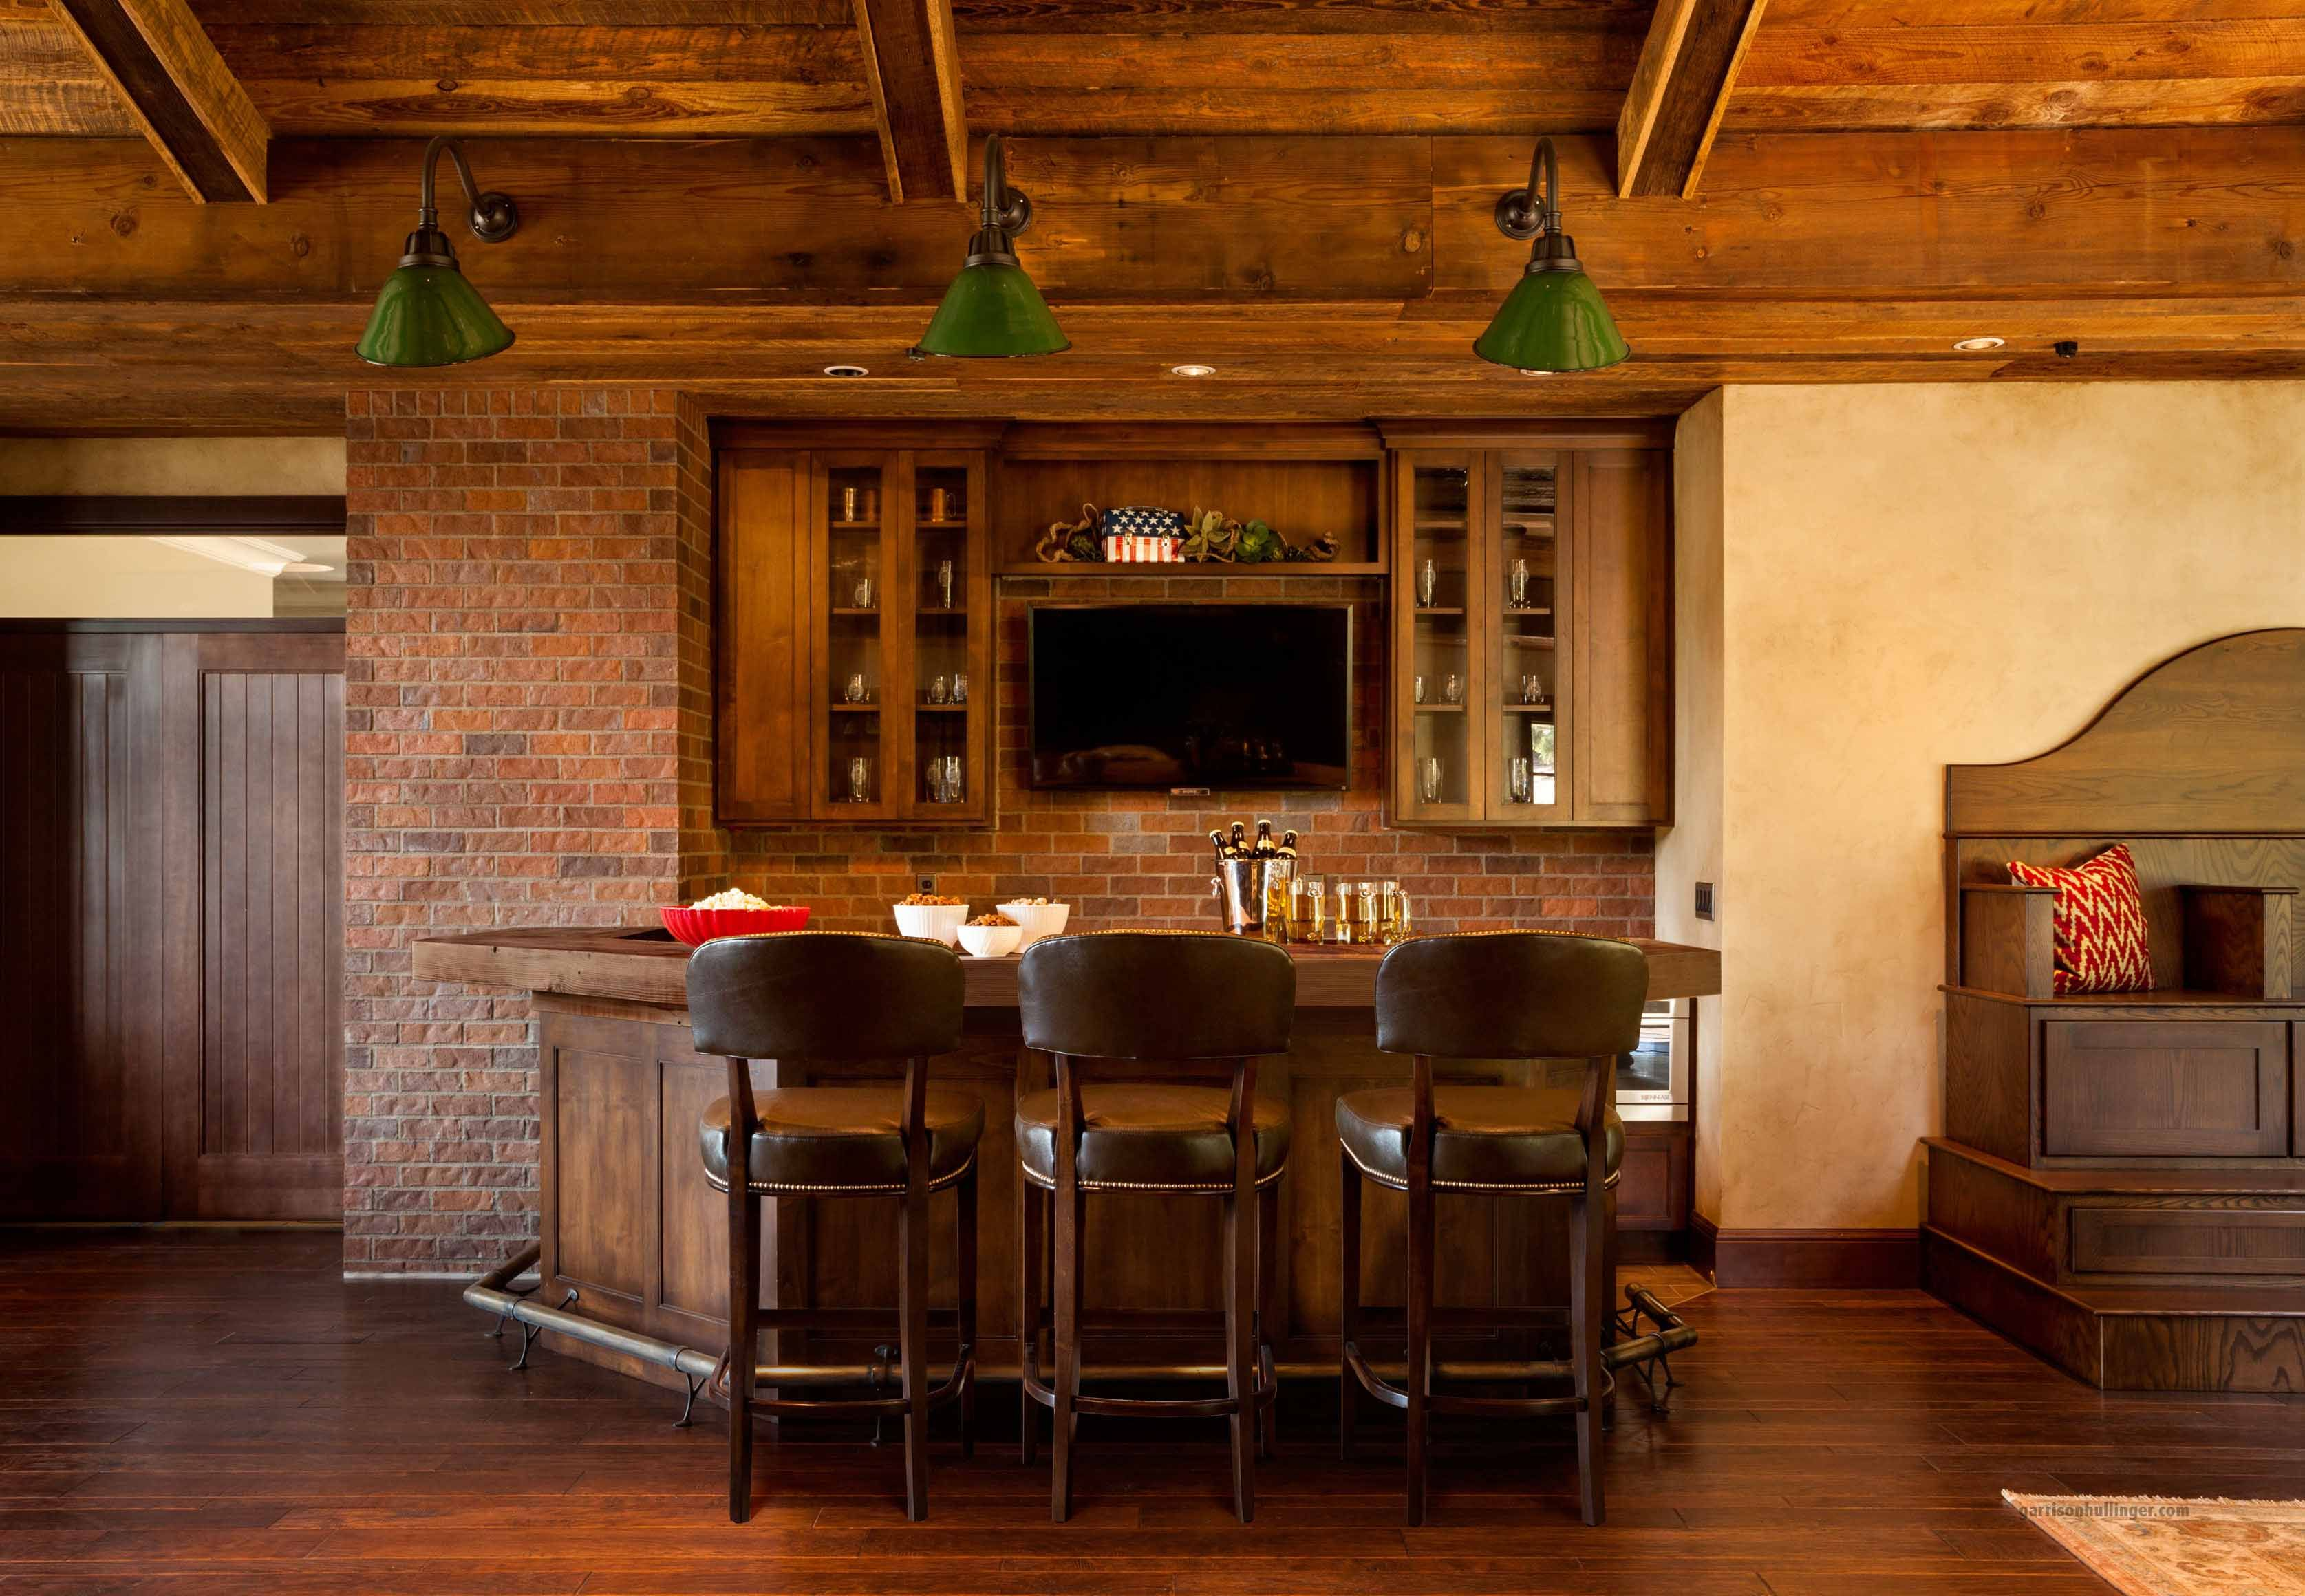 Brick Back Wall Warm Wood Cabinets Wooden Home Bar Bars For